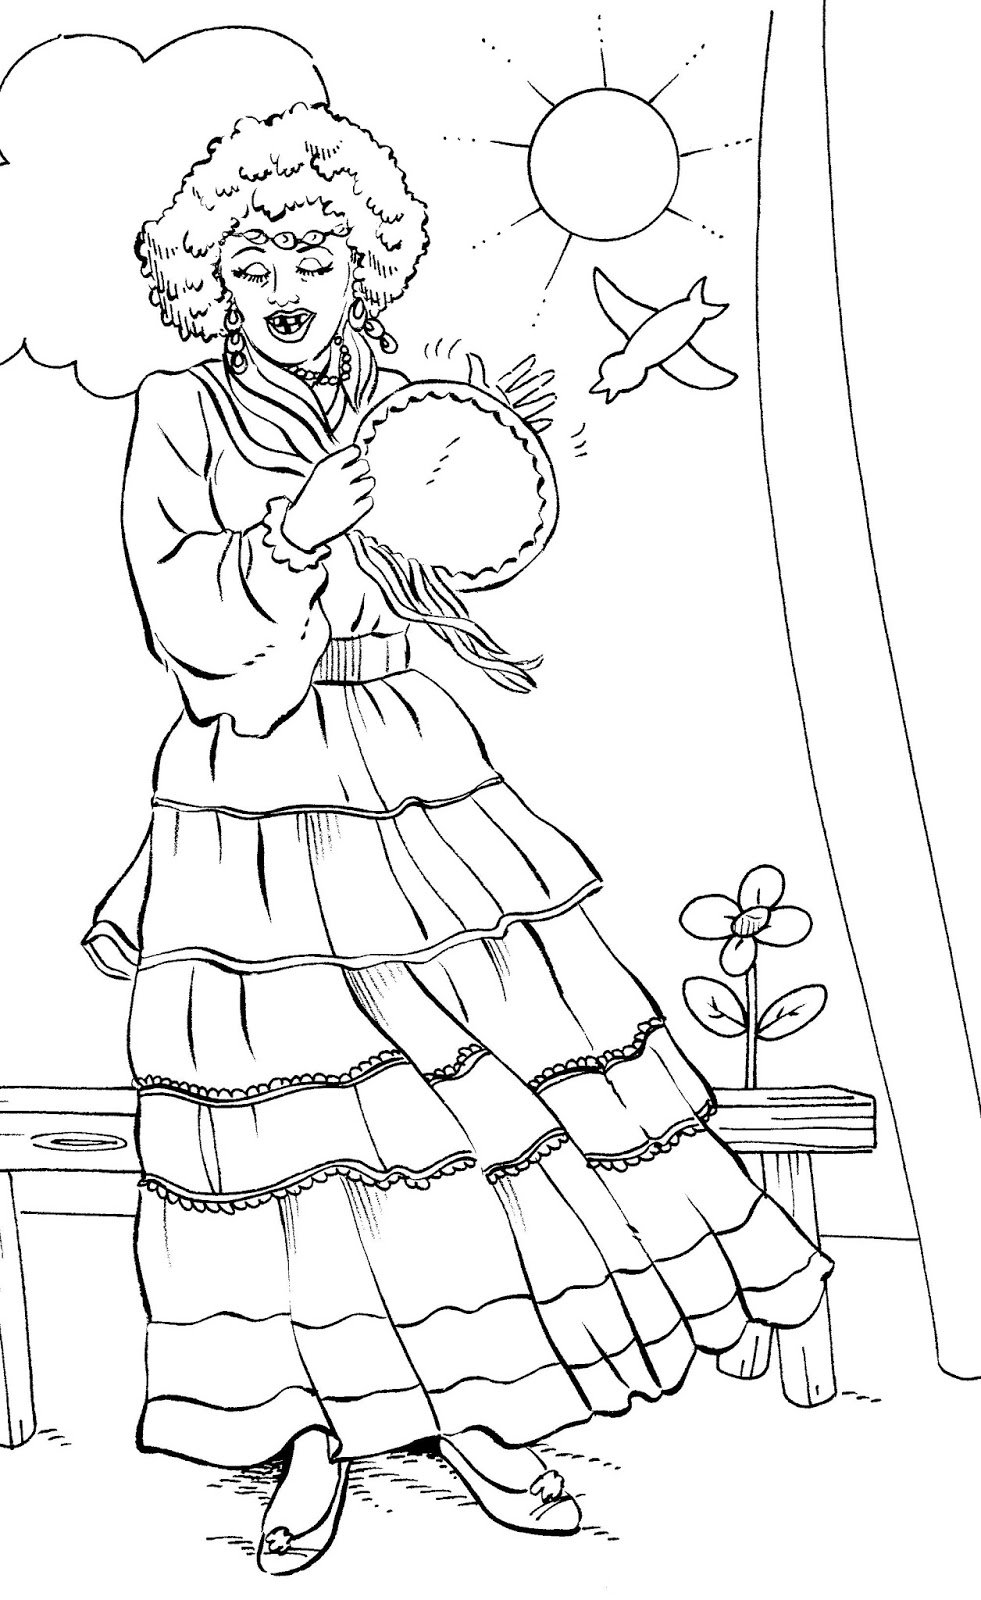 Adult Top I Love Lucy Coloring Pages Gallery Images best mostly paper dolls too january 2015 lucille ball as lucy ricardo in episode 38 the operetta from i love television show this coloring book color me lucyquo